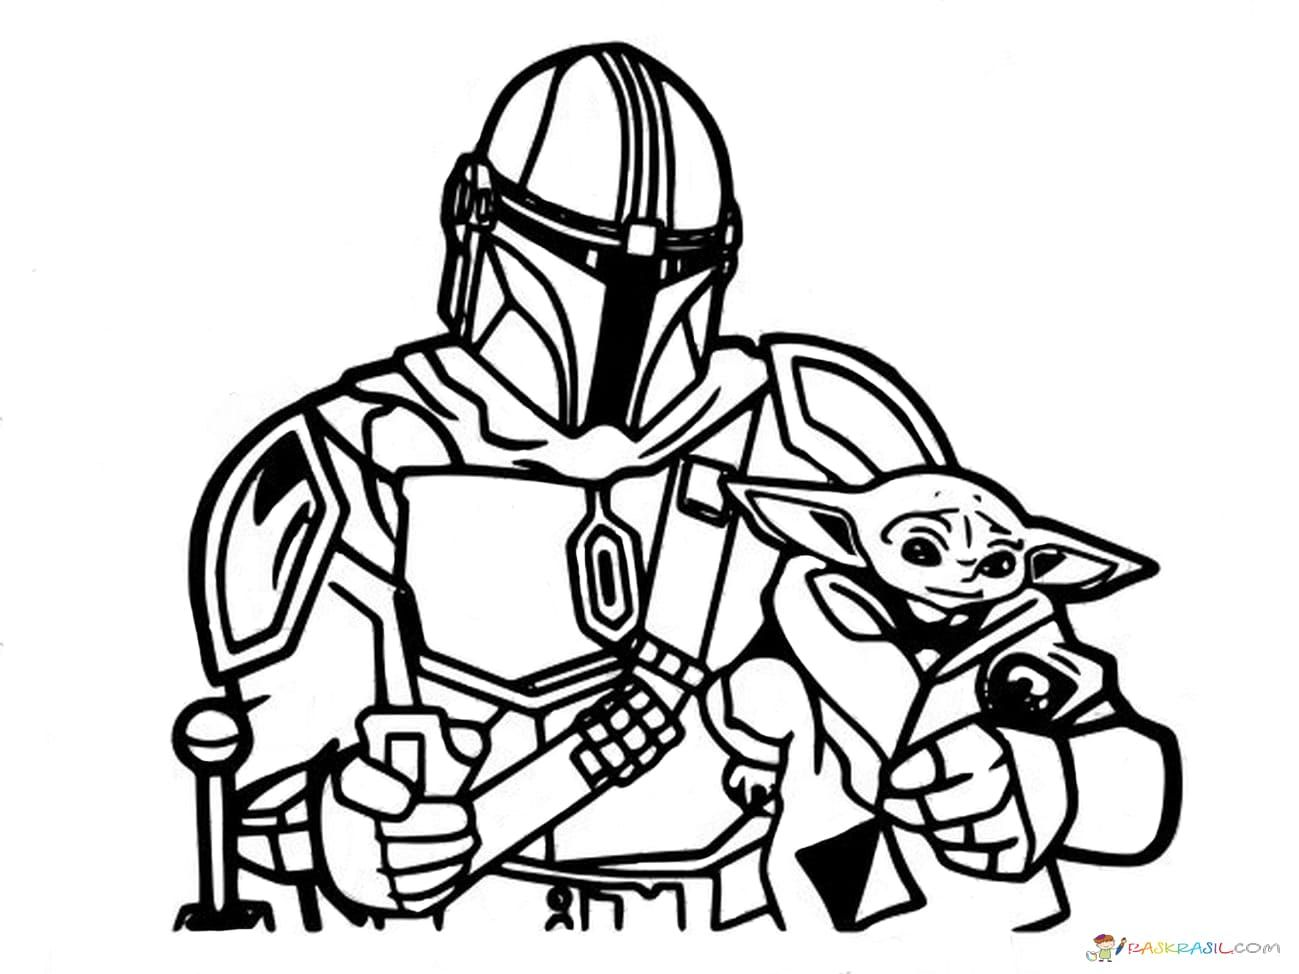 Download Or Print This Amazing Coloring Page Coloring Pages Baby Yoda The Mandalorian And Bab Coloring Pages Unique Coloring Pages Free Printable Paper Dolls